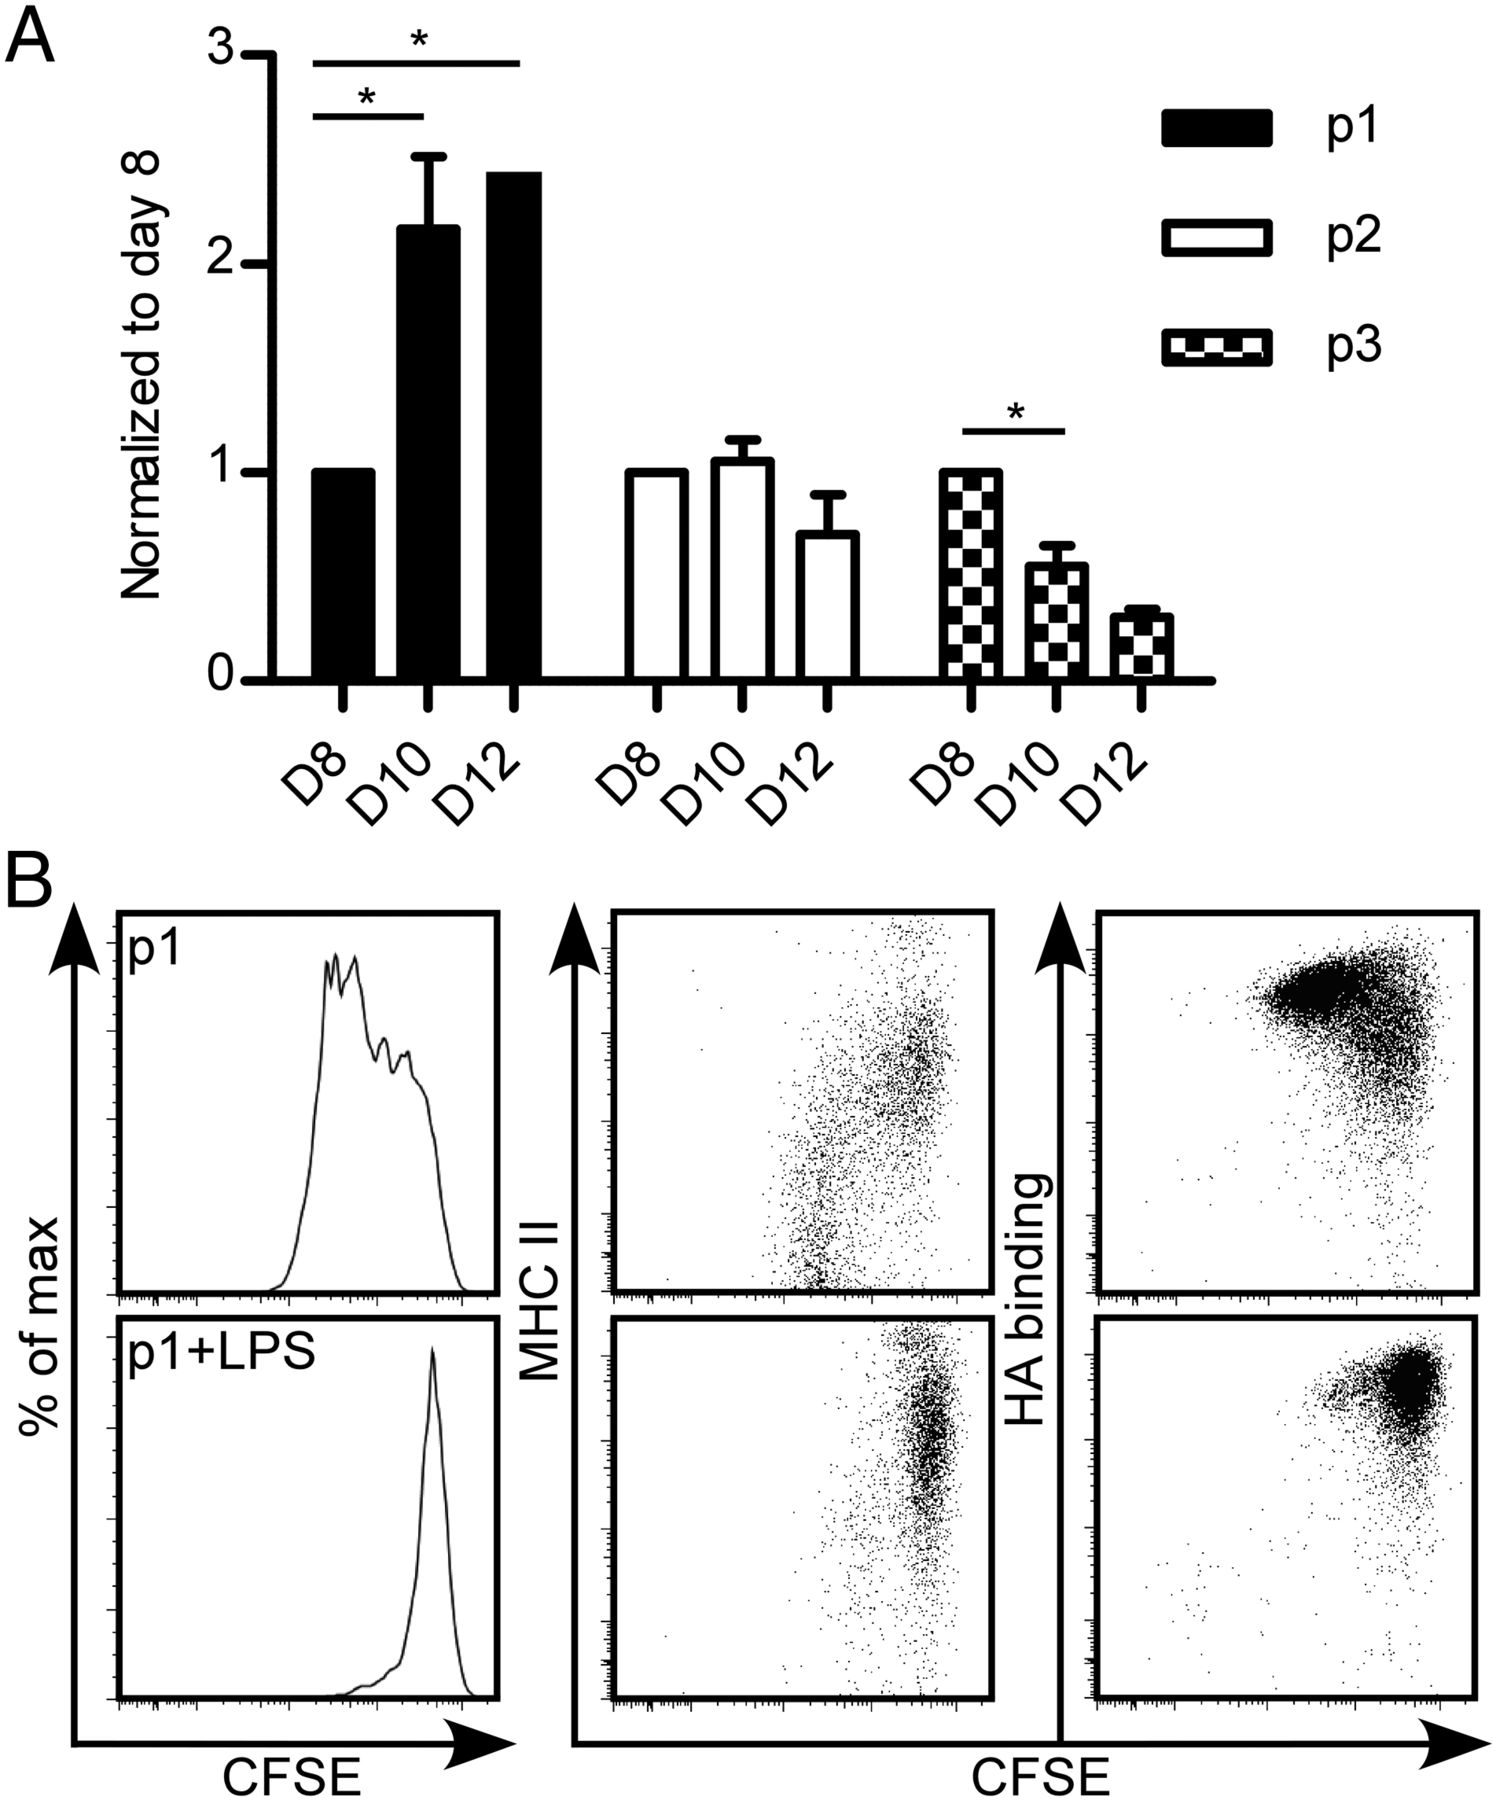 Hyaluronan binding identifies a functionally distinct alveolar download figure pooptronica